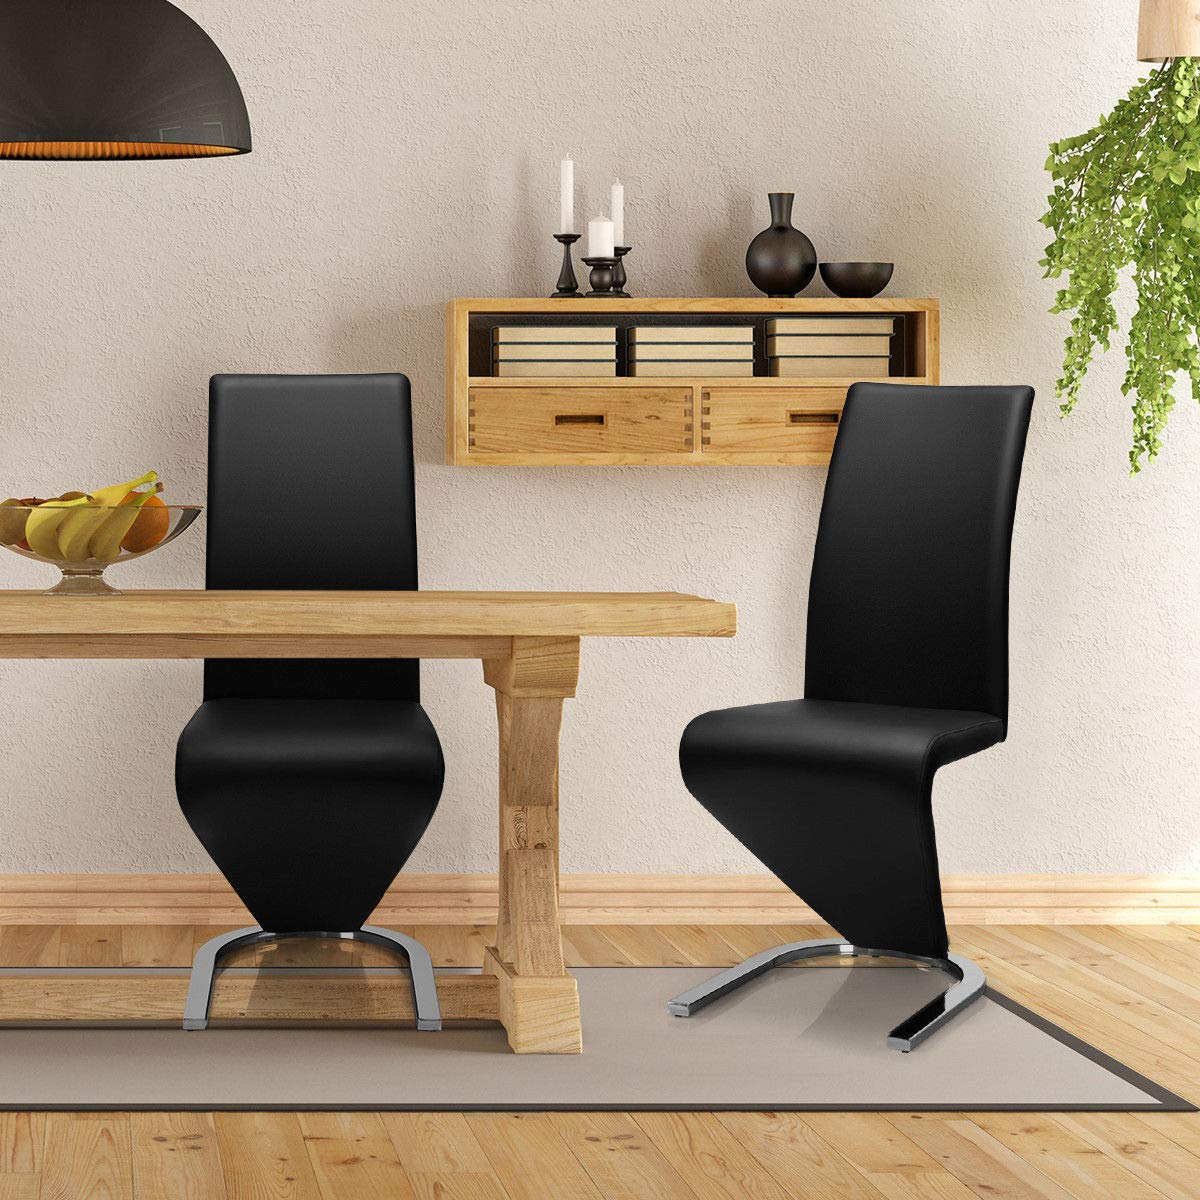 Giantex Set of 2 Modern Dining Chairs w/High Back, PU Leather Armless Chair for Home, Living Room, Bedroom, Leisure Chair w/U-Shaped Foot Padded Cushion, Black by Giantex